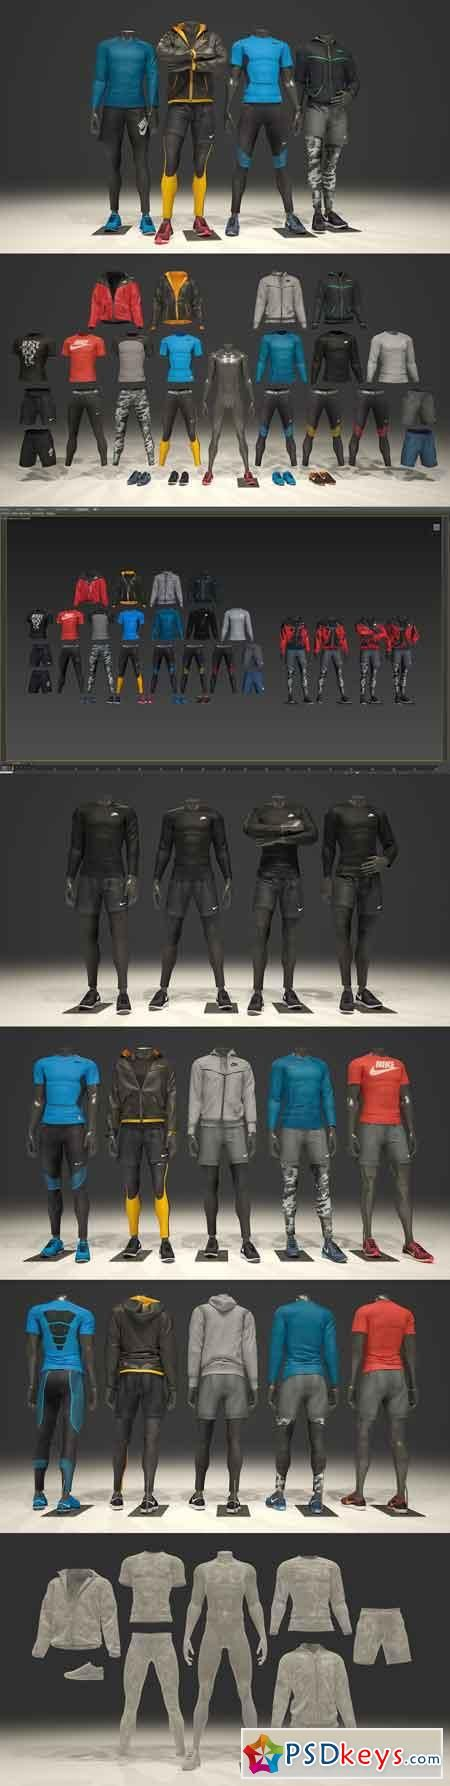 Male Mannequin Nike Pack 1 2123419 | Mockup | Nike, Packing